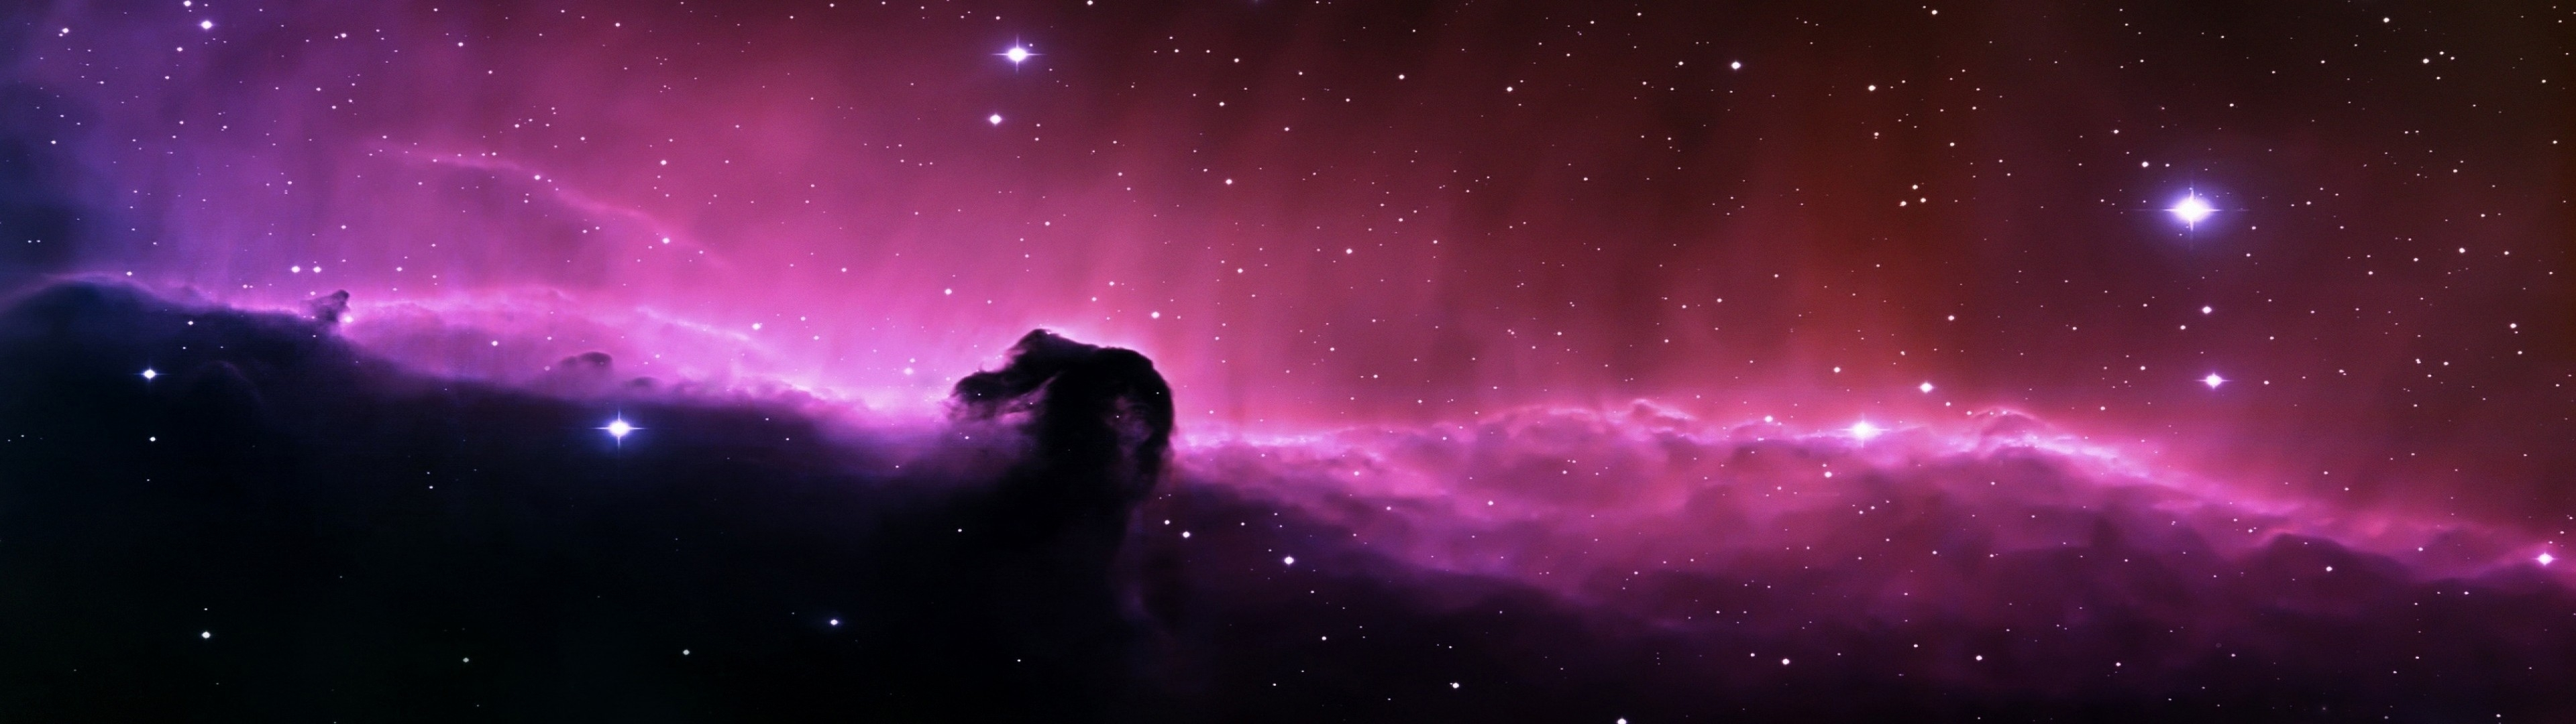 dual monitor wallpaper space ·① download free cool full hd